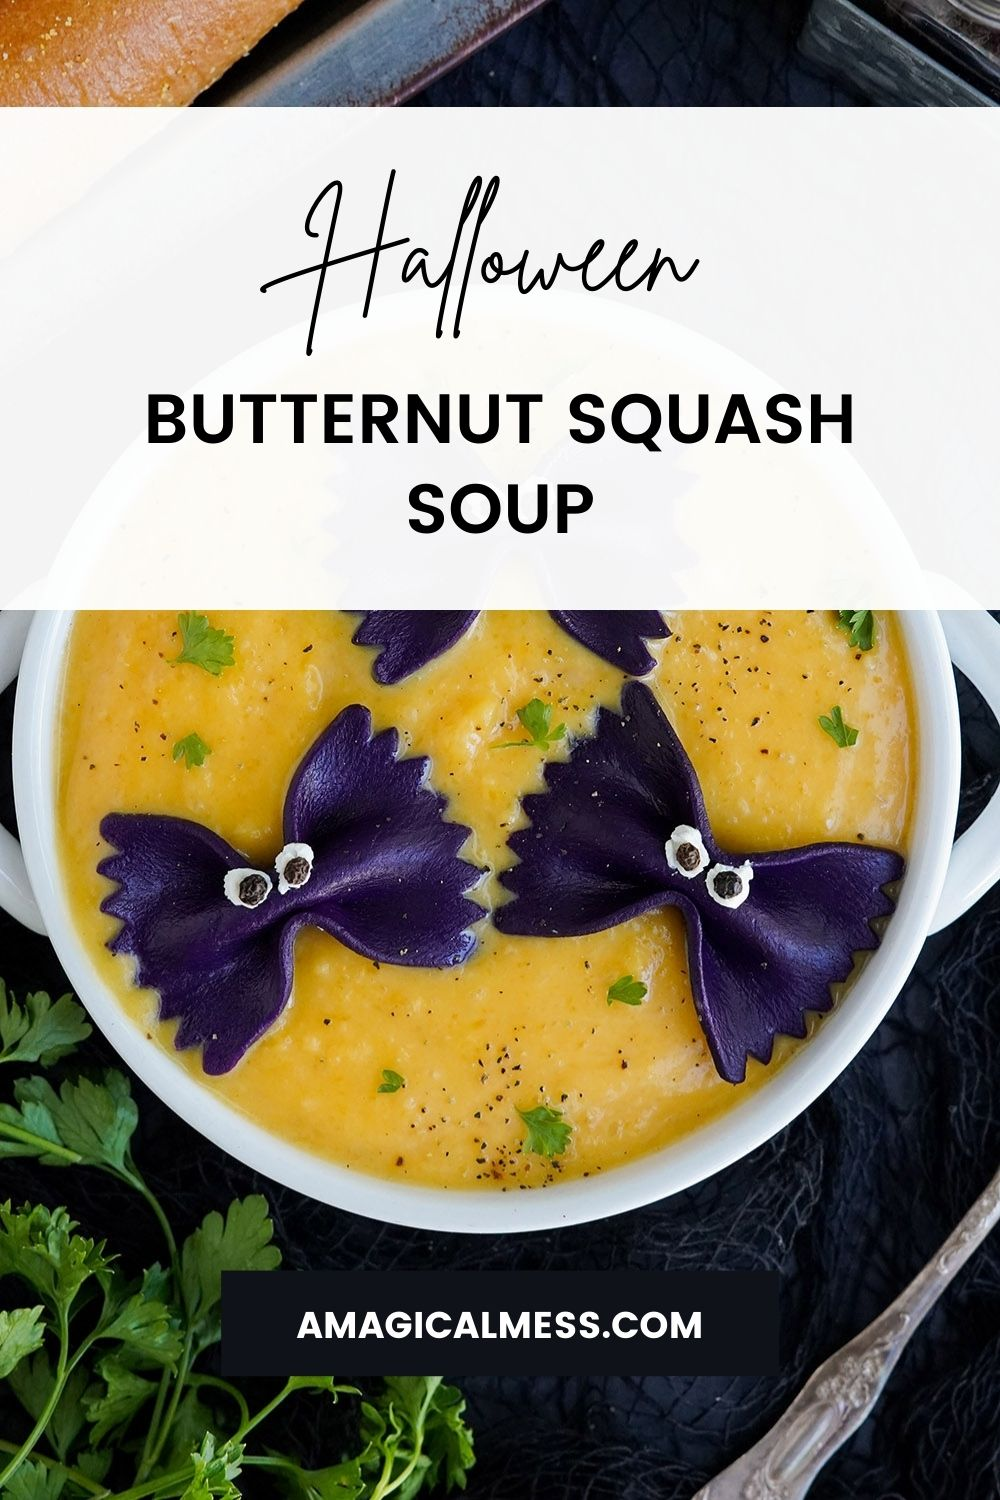 Bowl of butternut squash soup with black pasta to look like bats for Halloween.